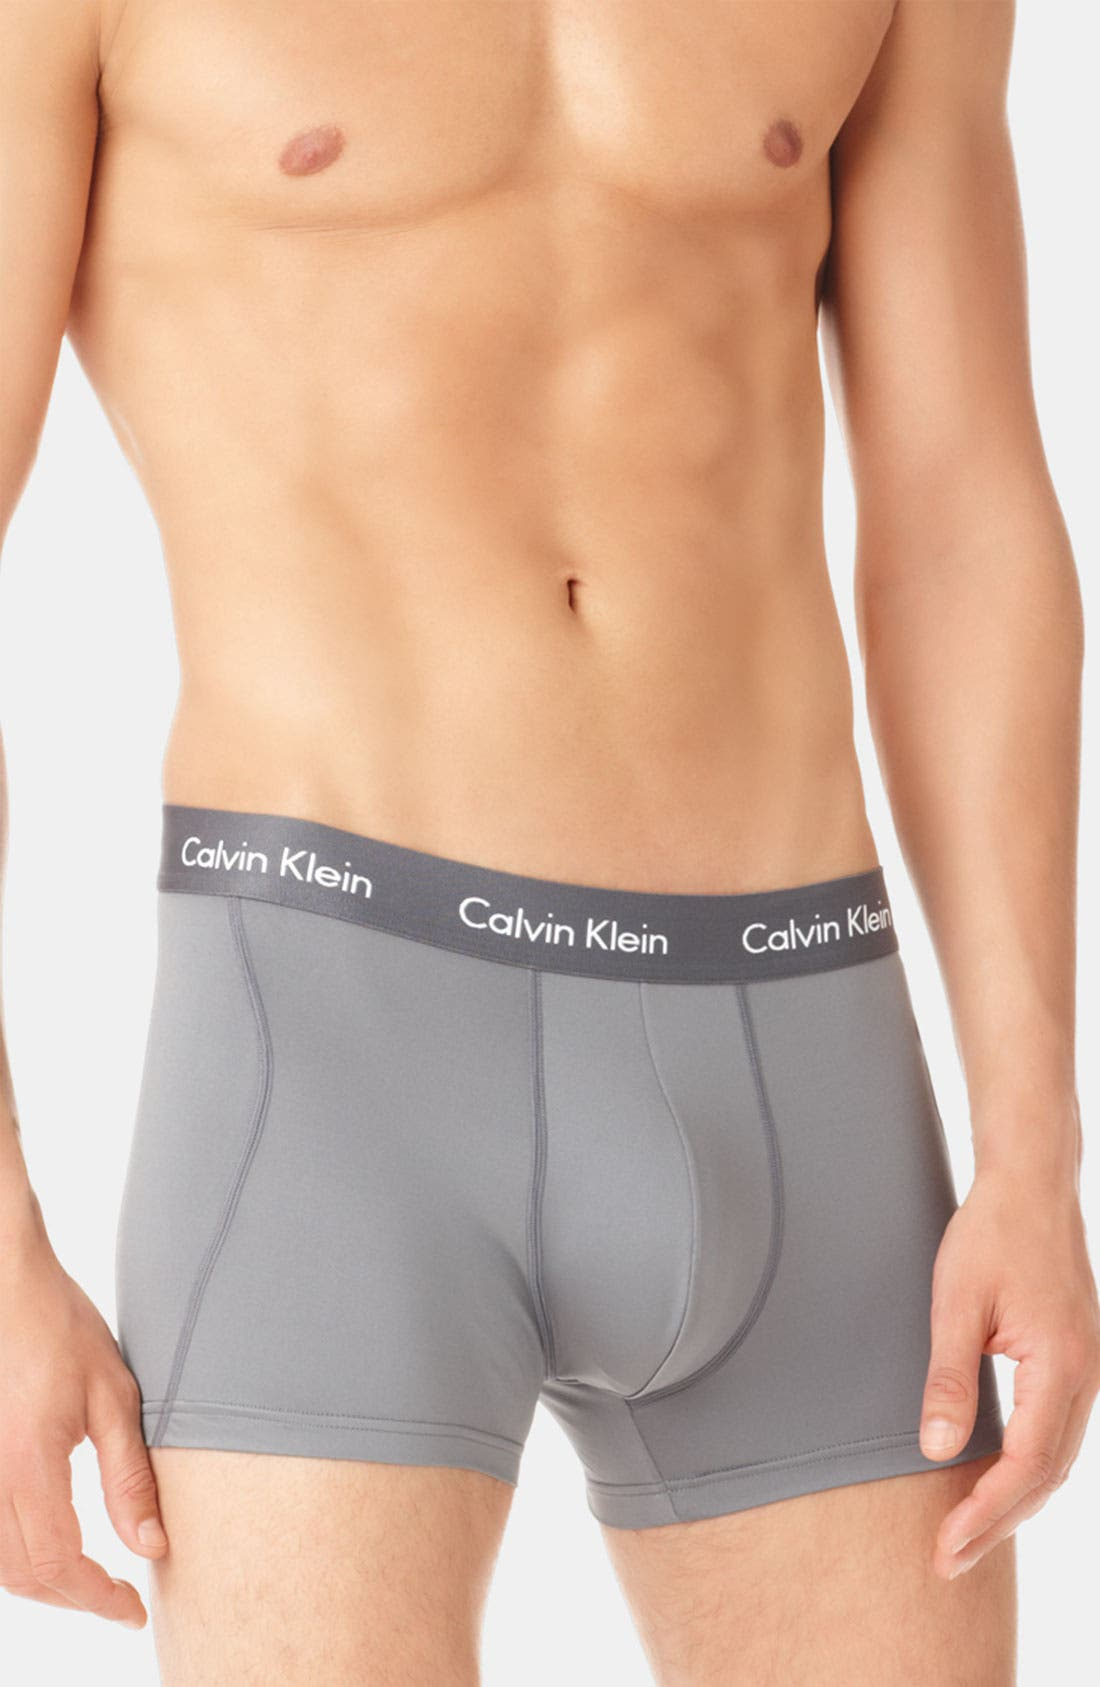 Main Image - Calvin Klein Microfiber Stretch Trunks (Assorted 2-Pack)(Online Exclusive)